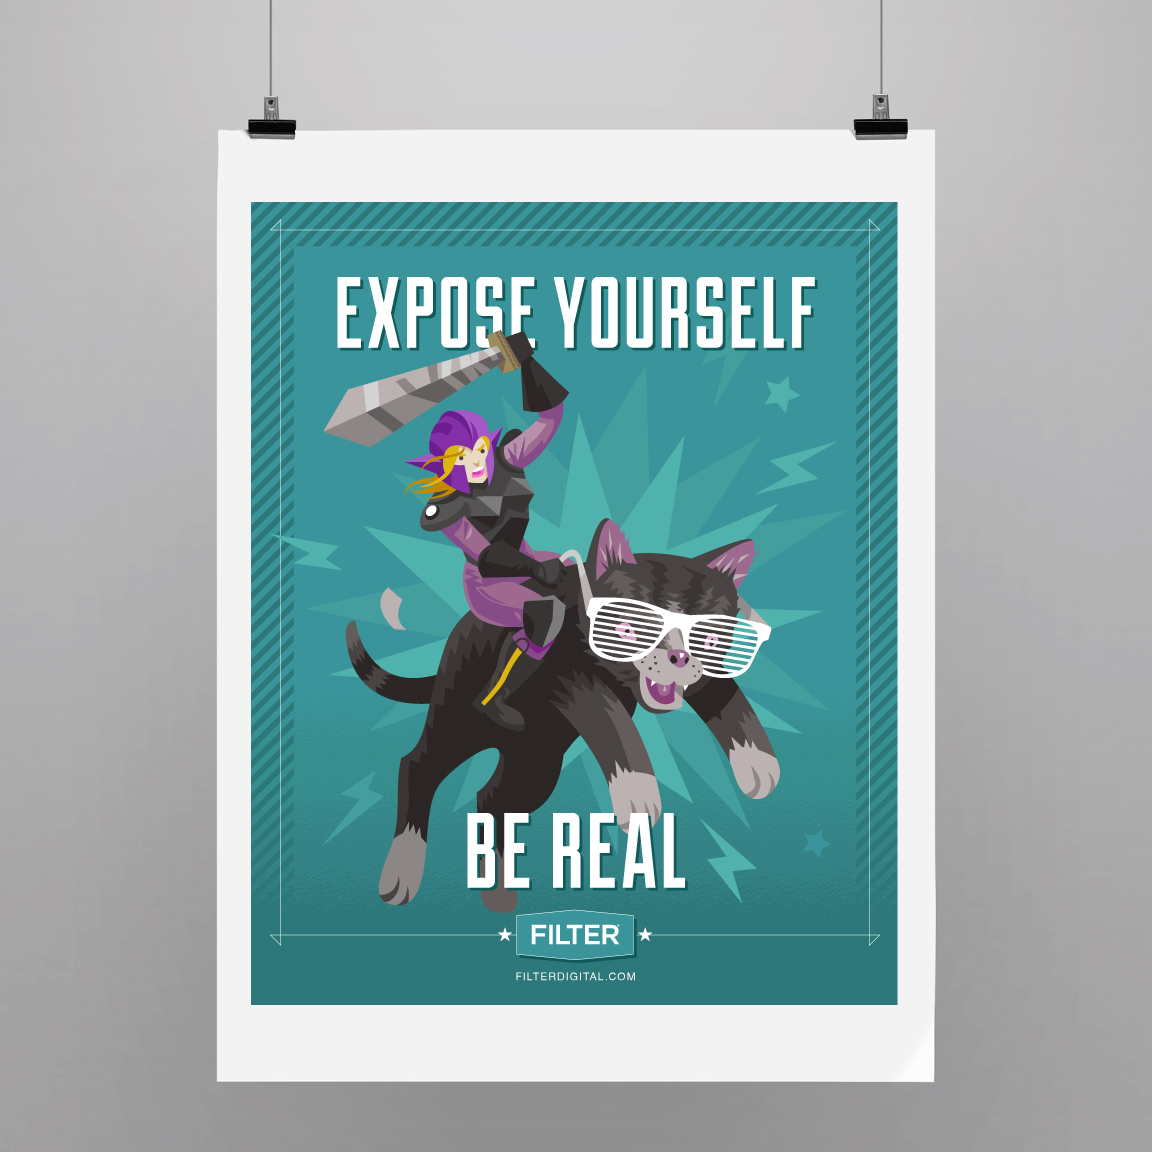 Expose yourself. Be real.